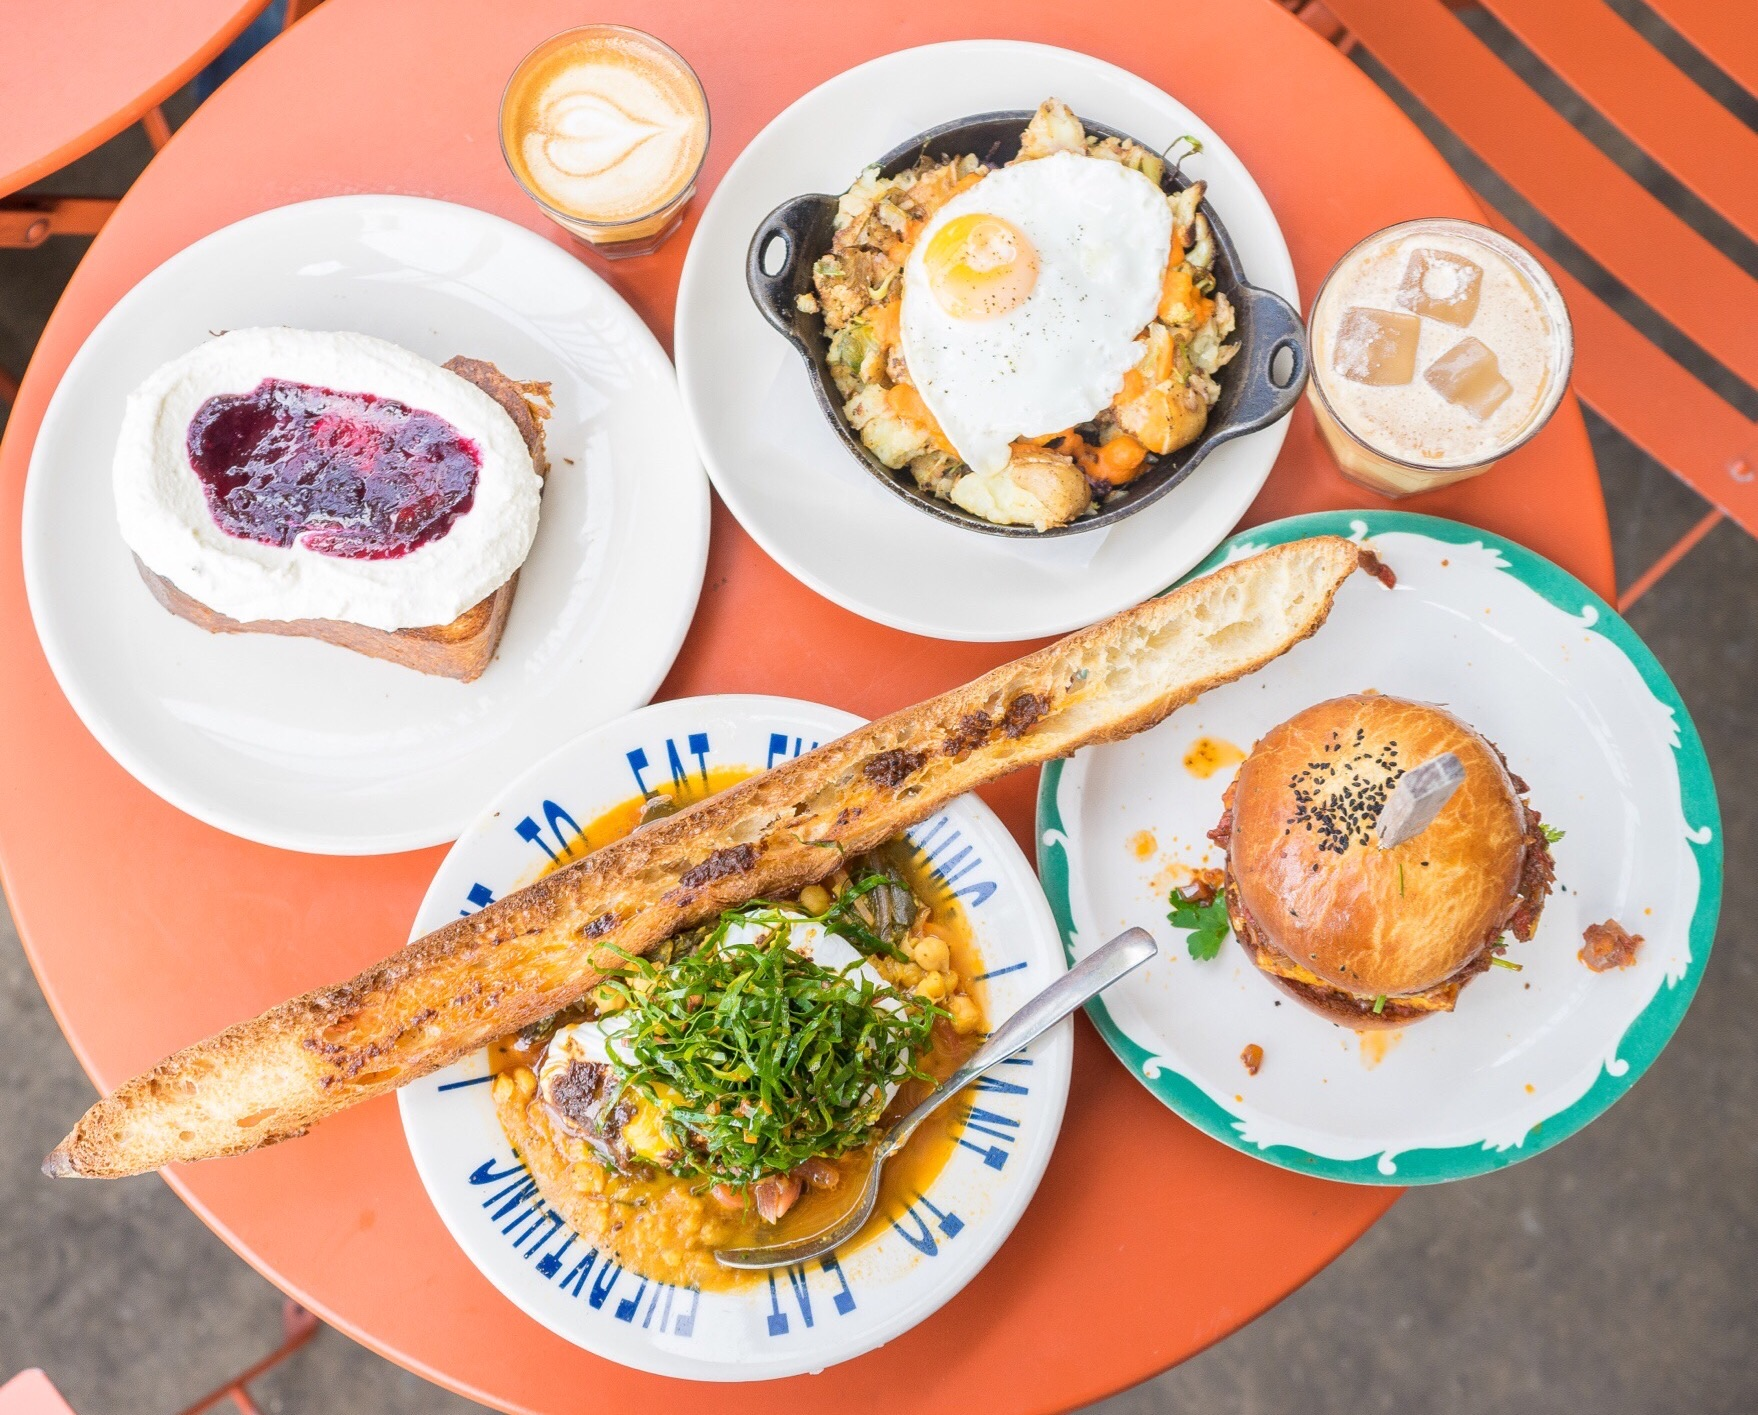 Brunch Spread at Sqirl, Silver Lake, CA